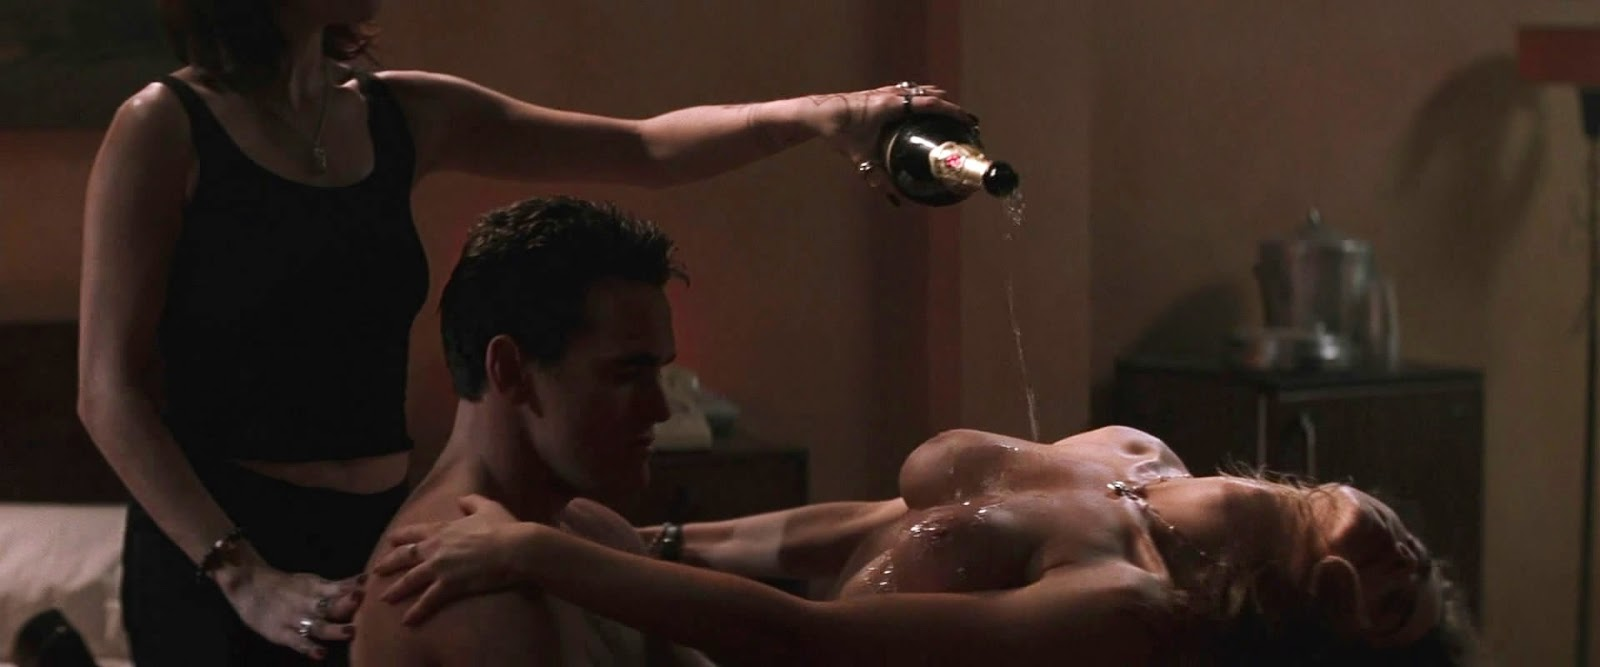 from Camron wild things nude movie scenes